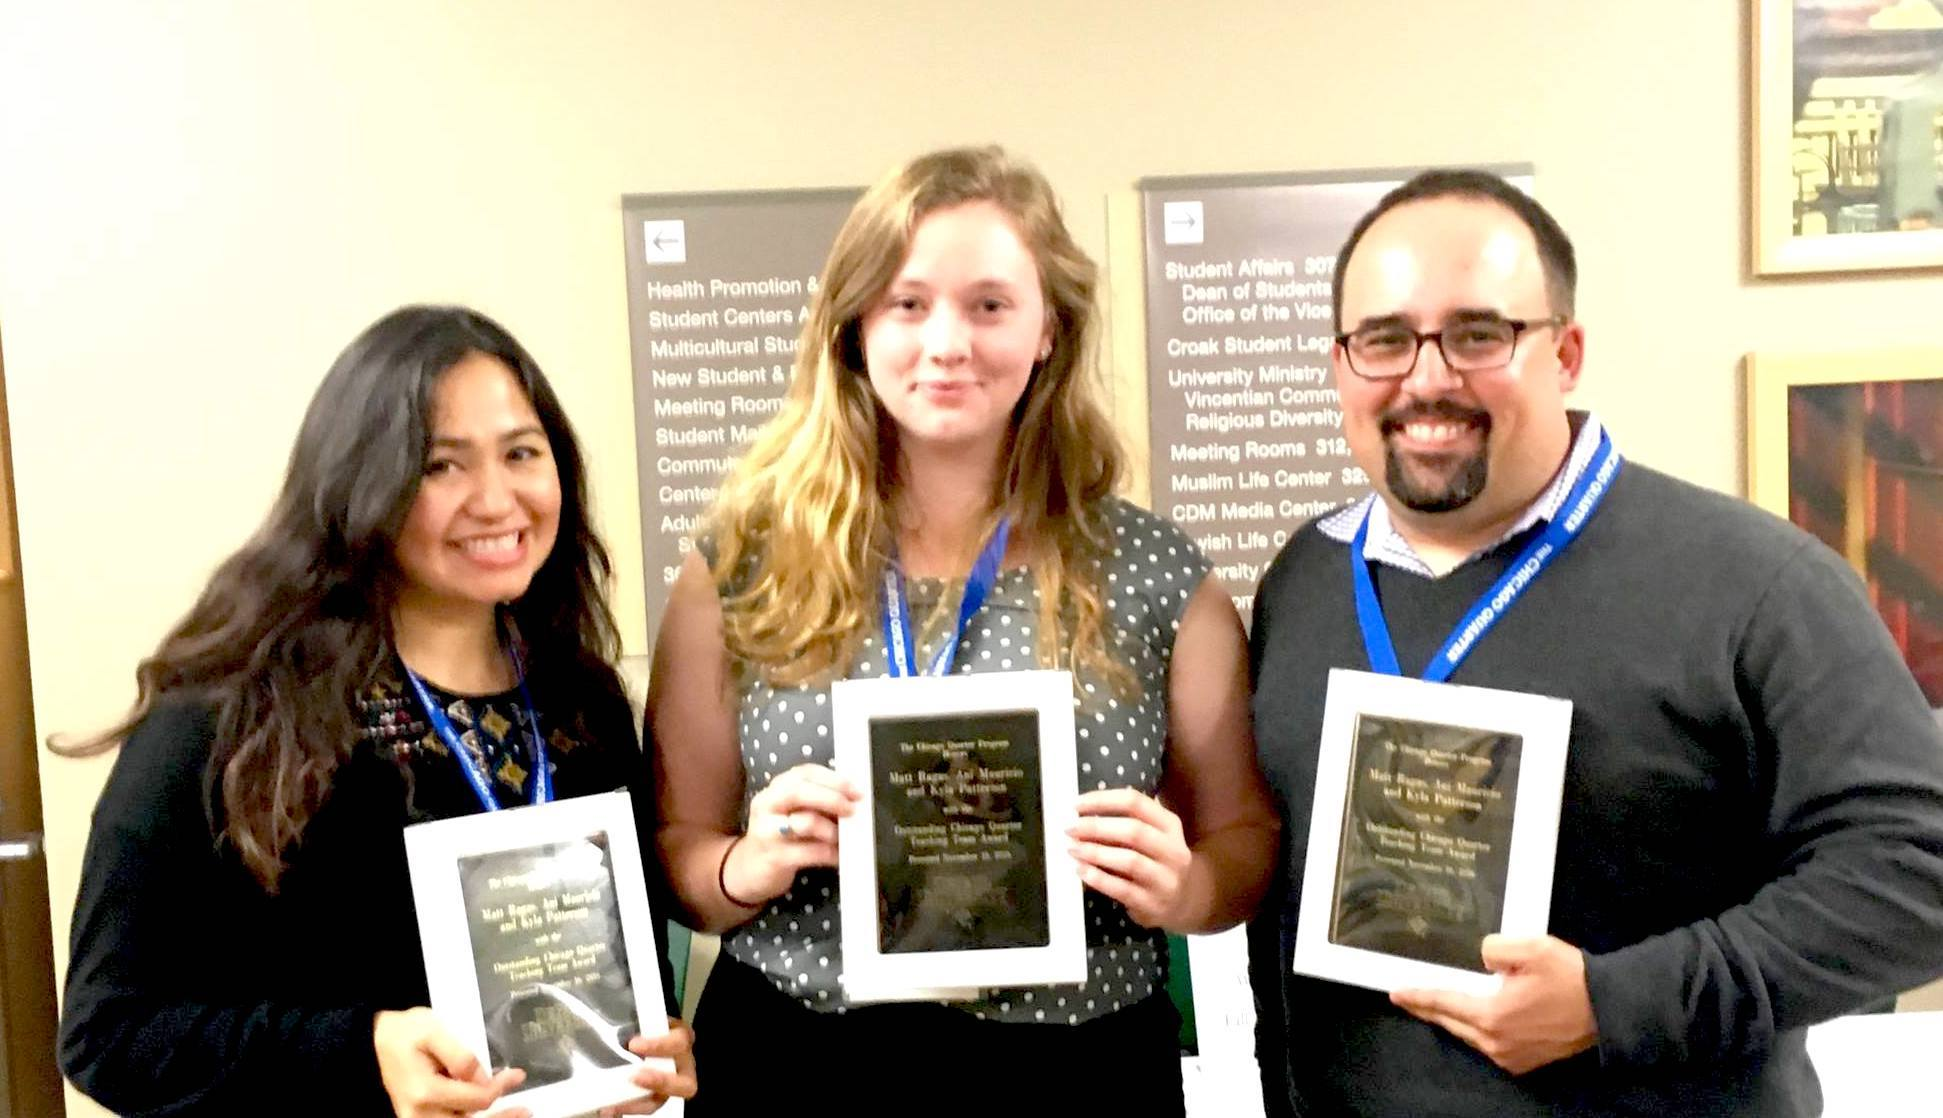 Ani Maricio (L), Kayla Patterson (C) and Matt Ragas (R) were awarded with an Outstanding Chicago Quarter Teaching Team Award by the university.